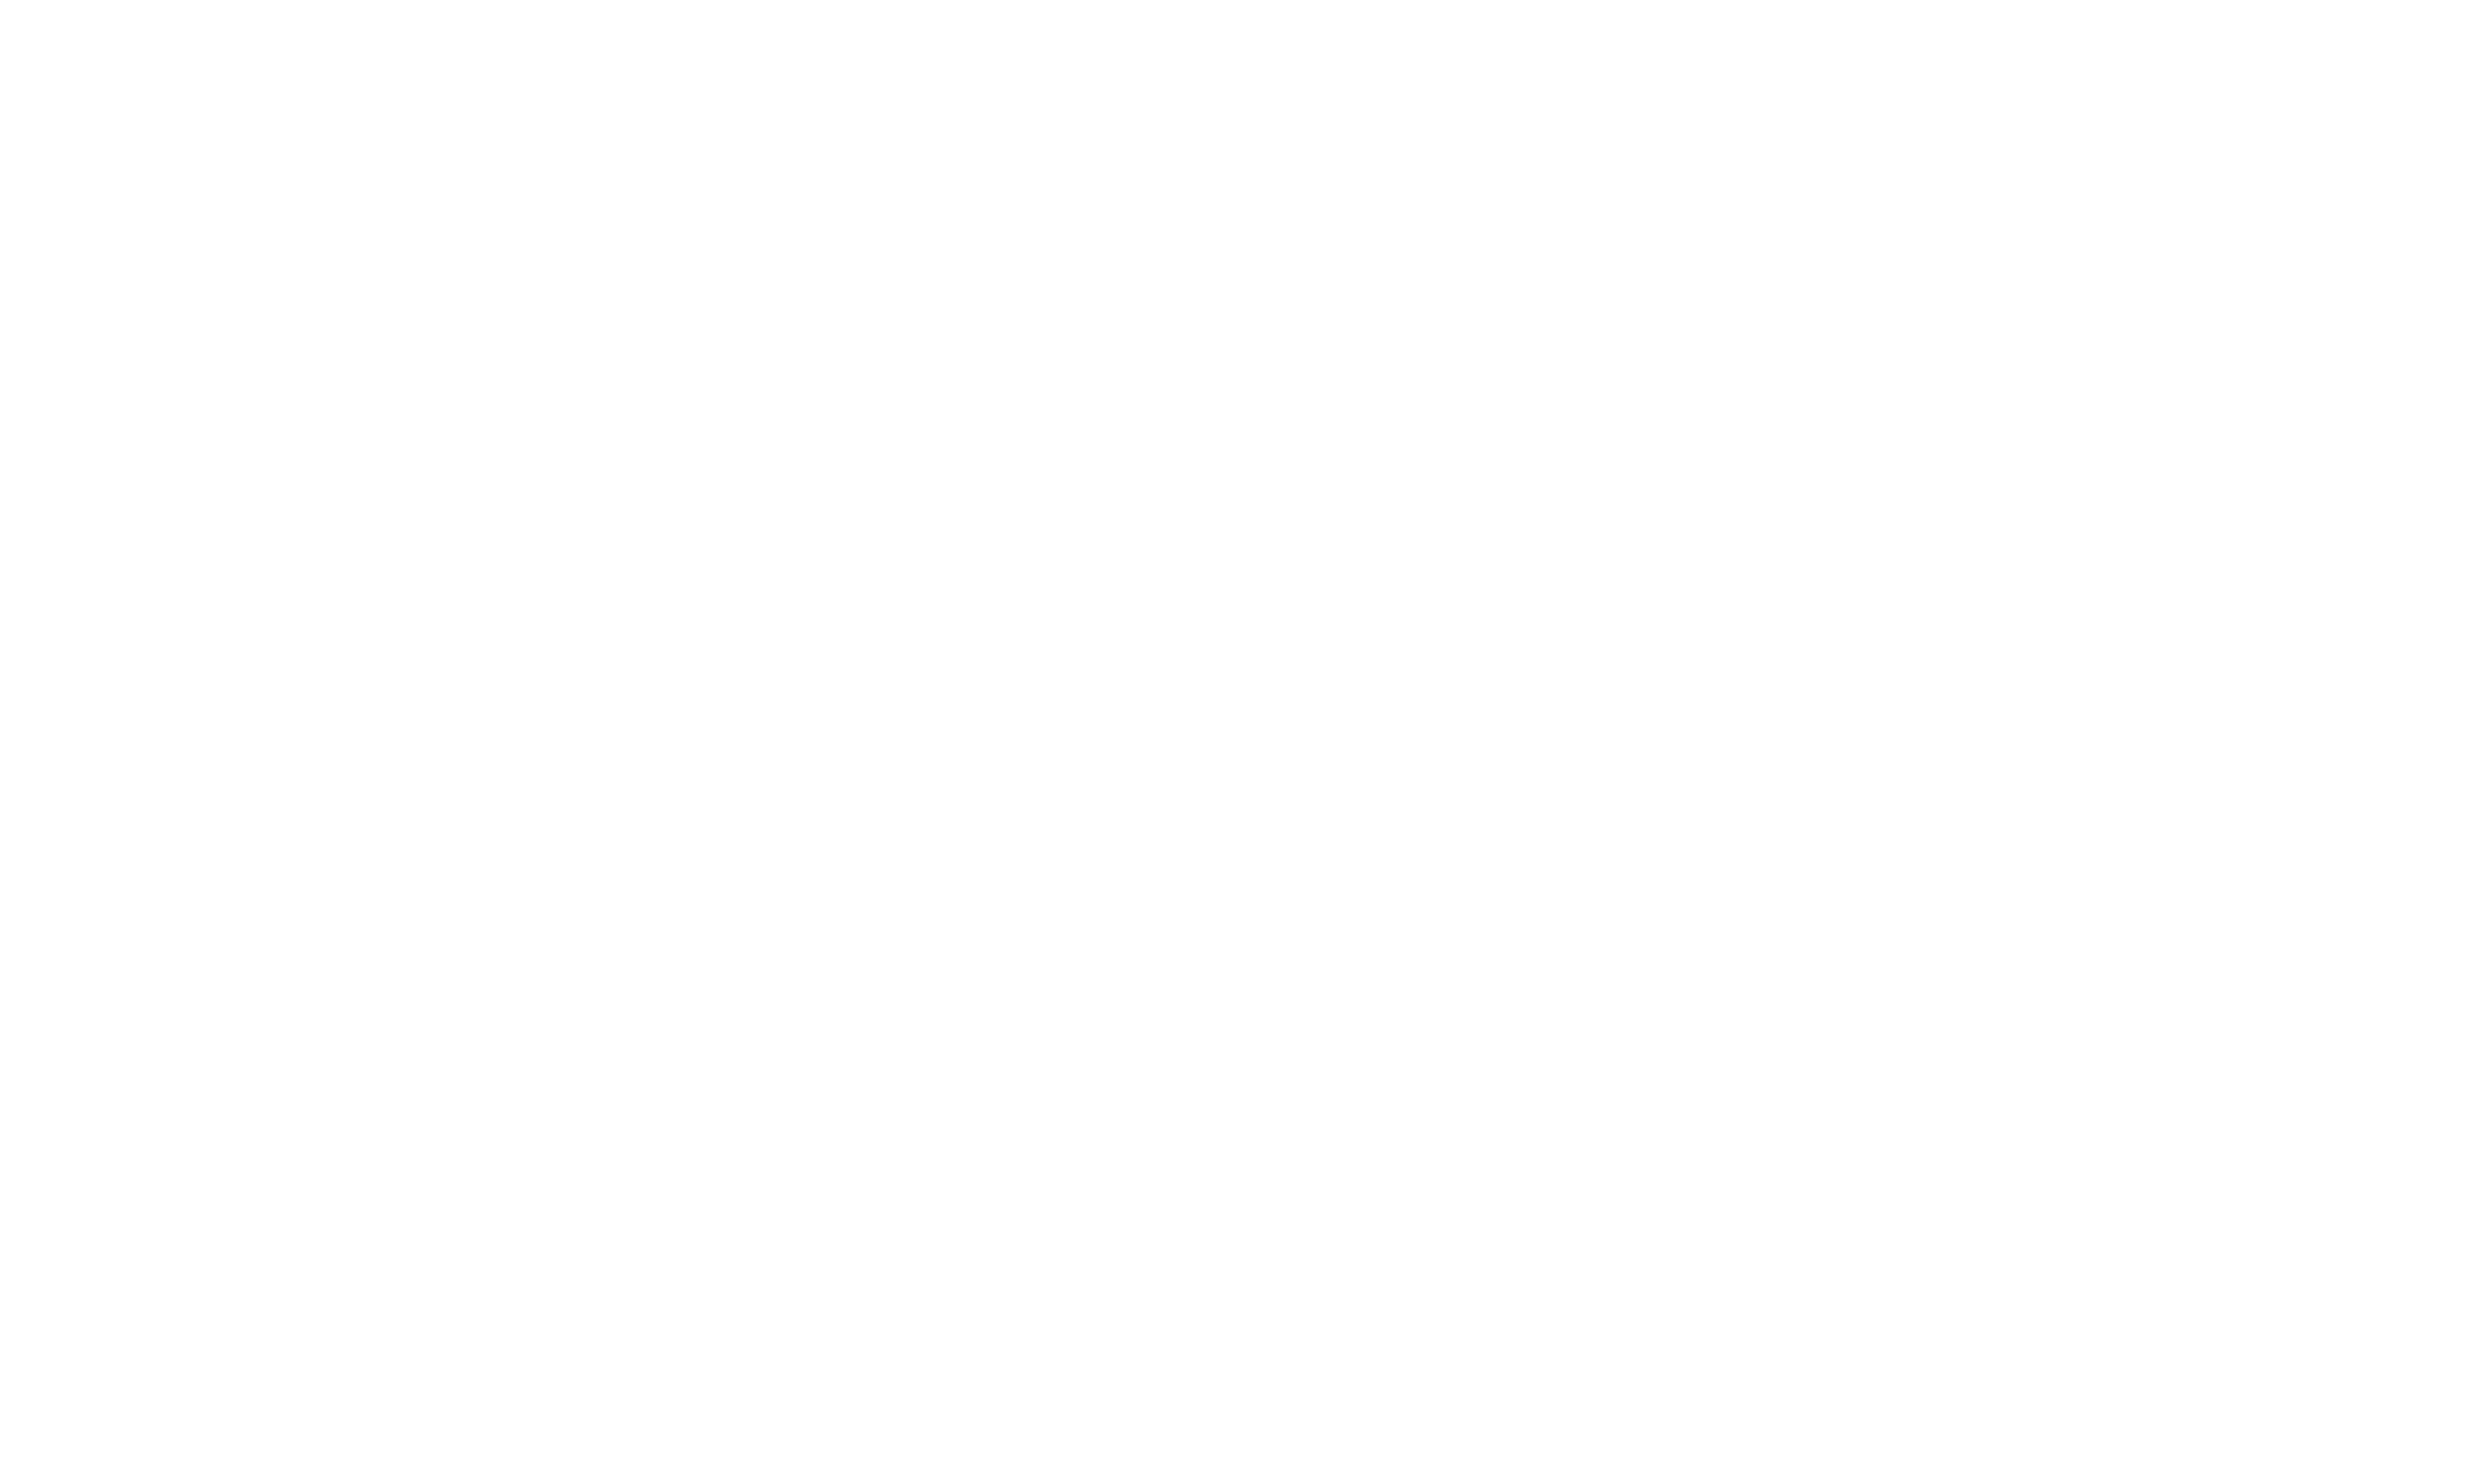 logo-engie-carré-e1432129458240